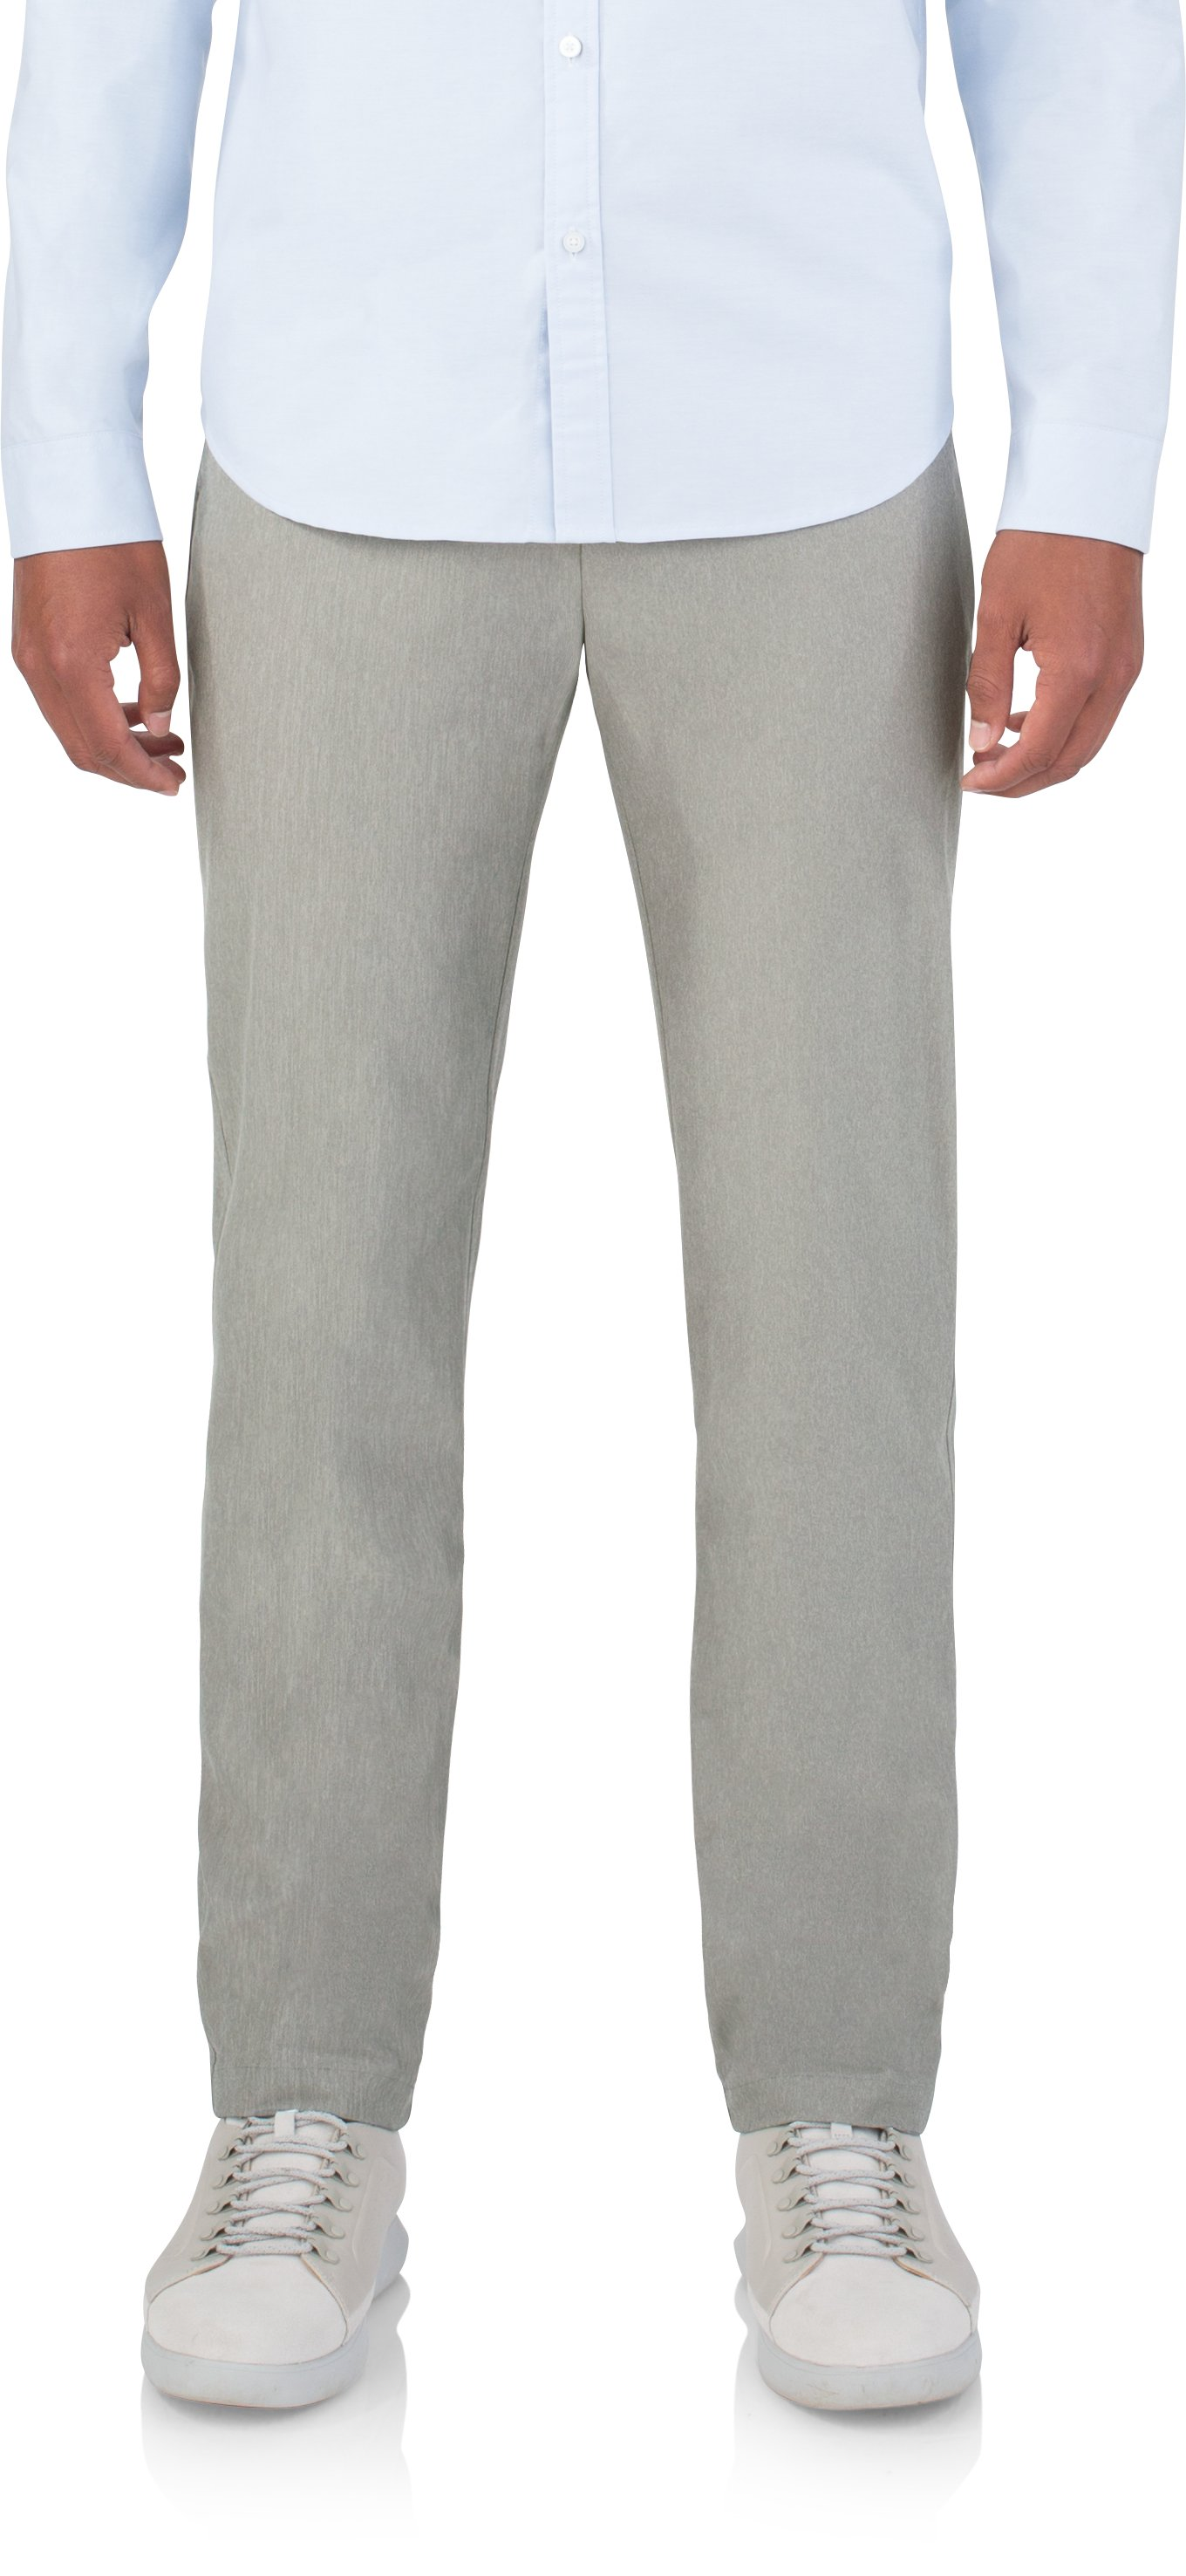 Chino - Knit Suiting, Medium Gray Heather, zoomed image